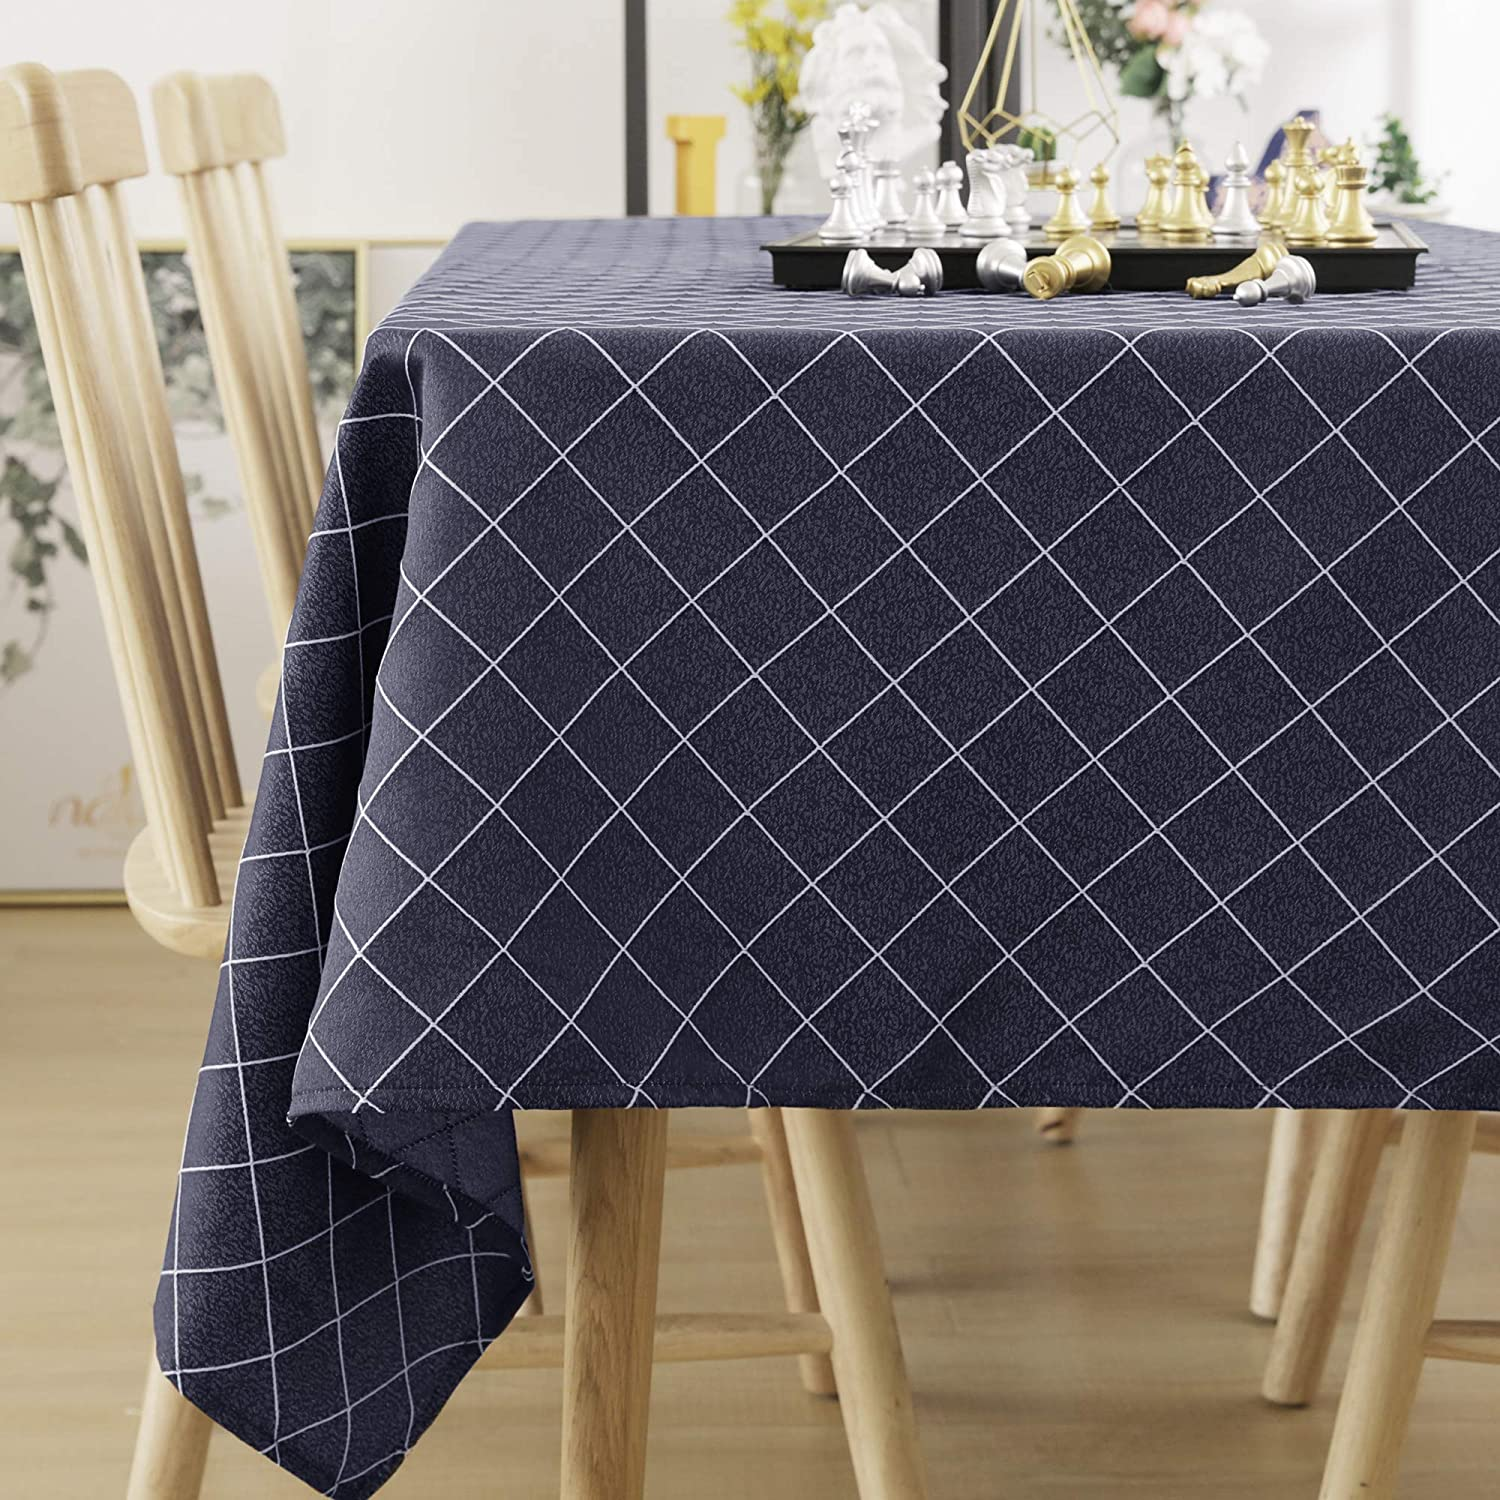 Deconovo Waterproof Table Cloth Rectangle Jacquard Chequer Tablecloth Rectangular Large Table Cloth for Outdoor Beige 130x220cm